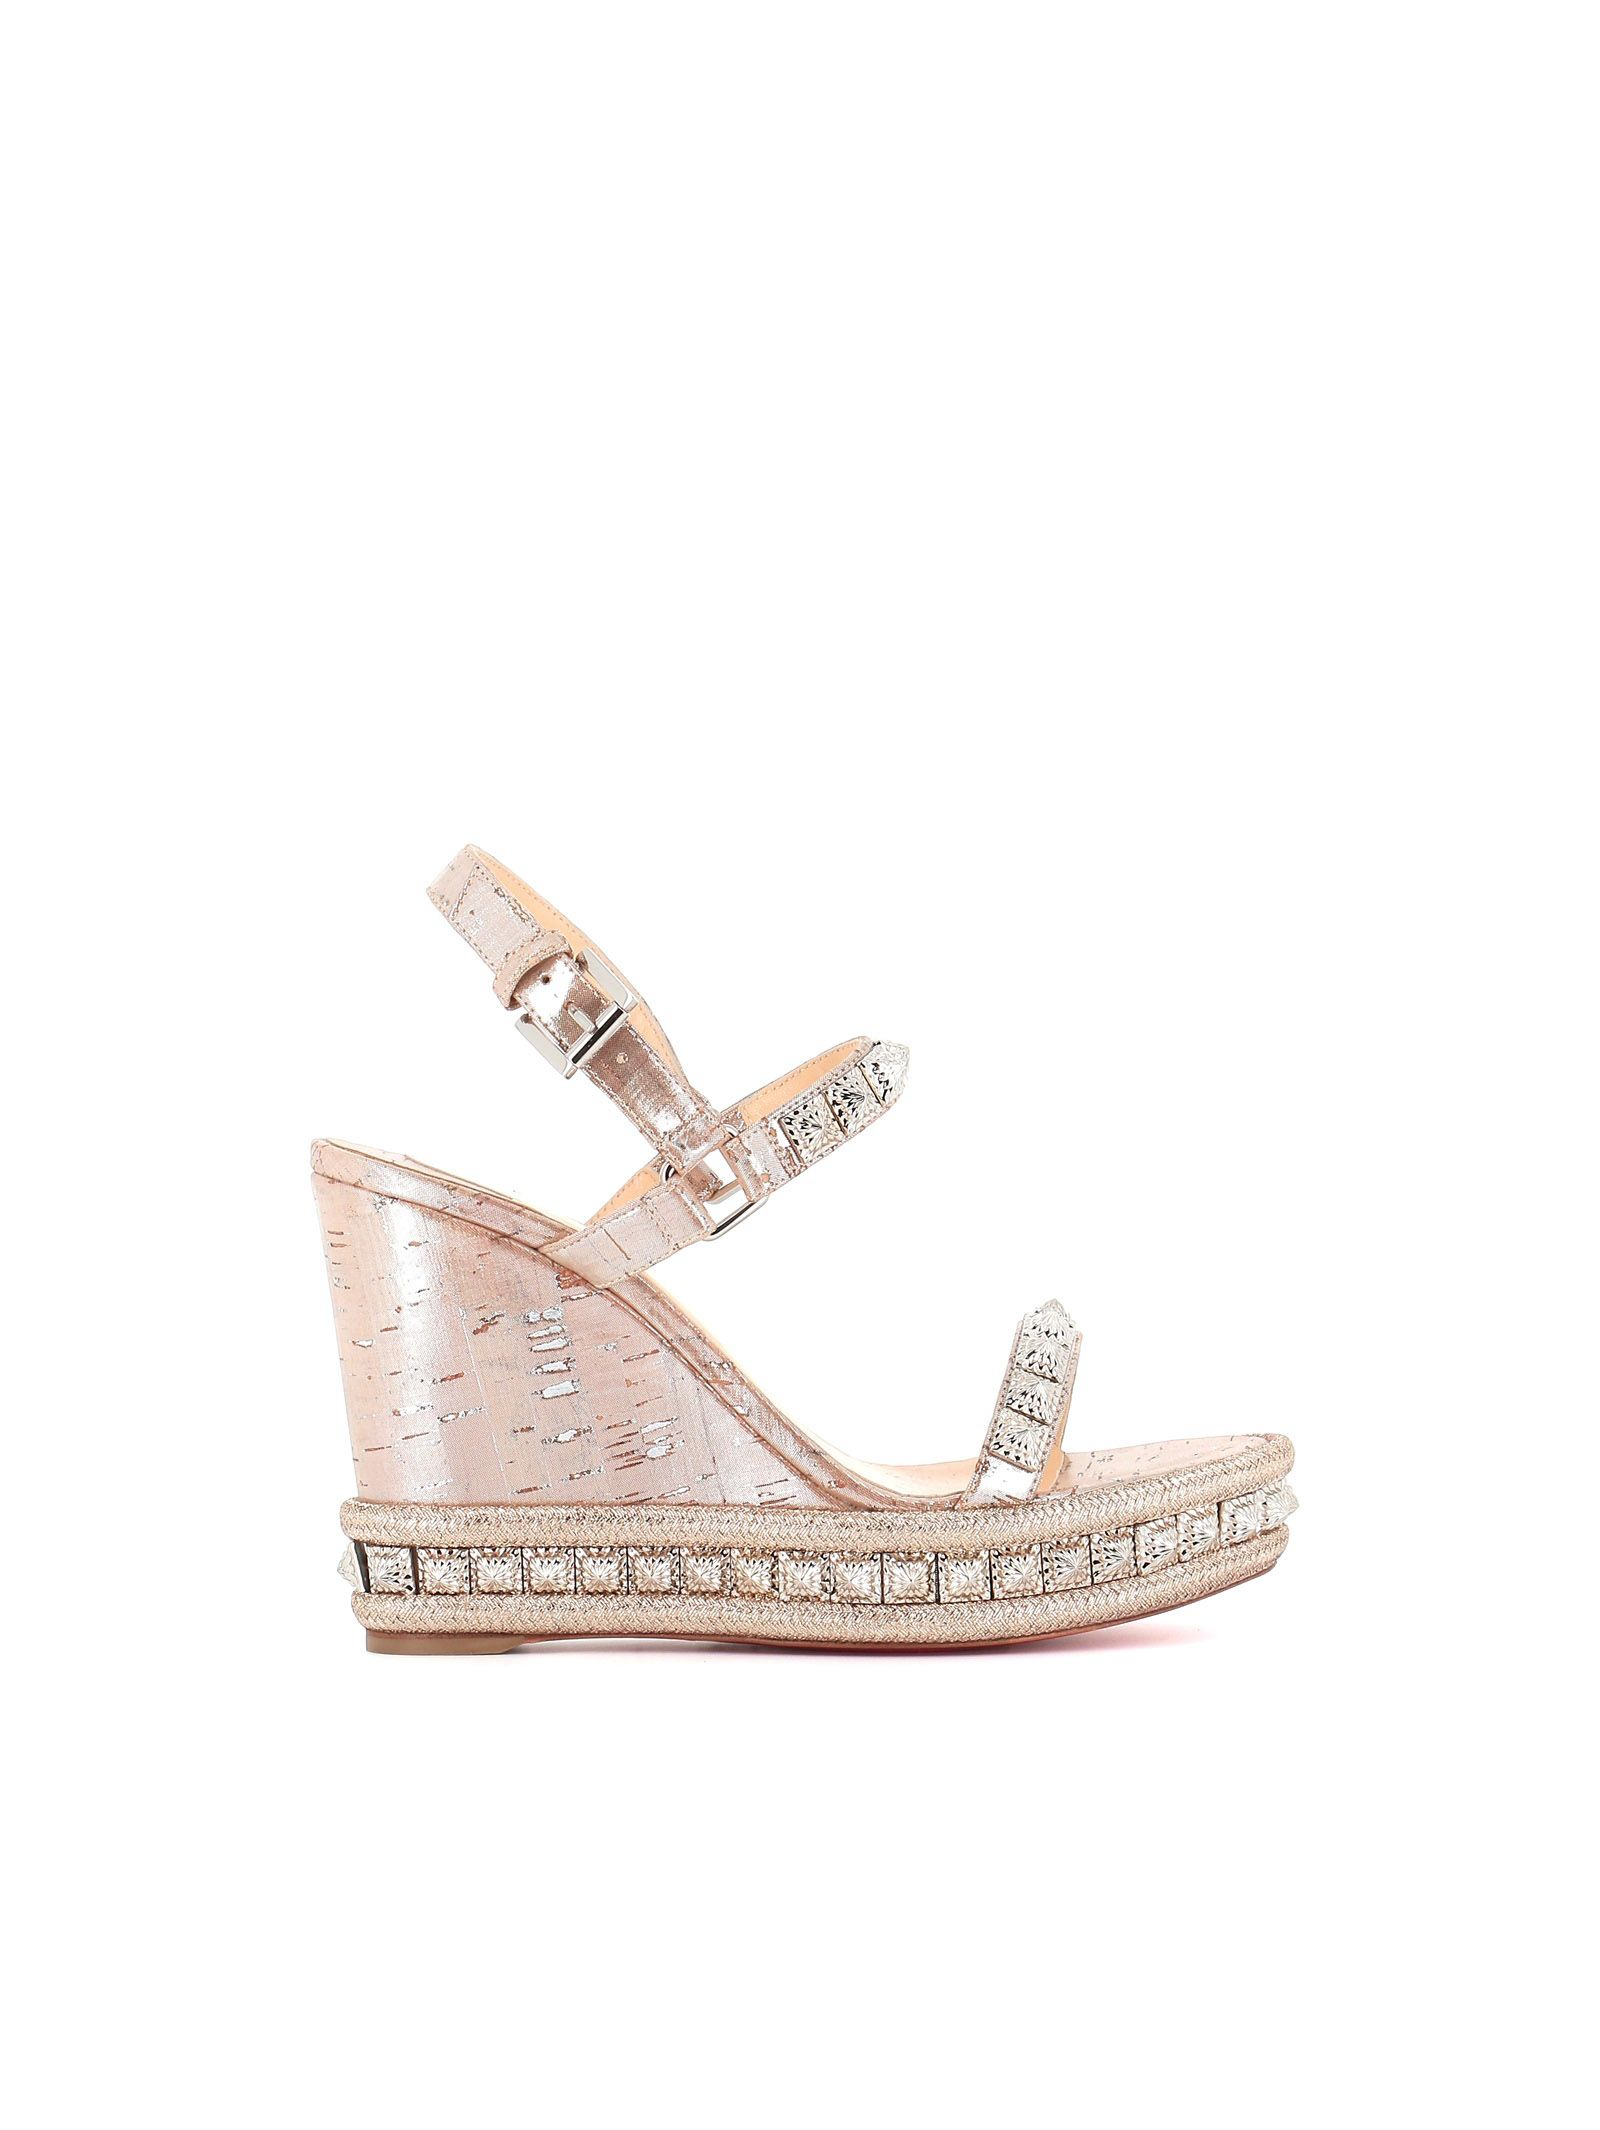 b10e7fc03b Christian Louboutin Pyradiams 110 Spiked LamÉ Wedge Sandals In Silver